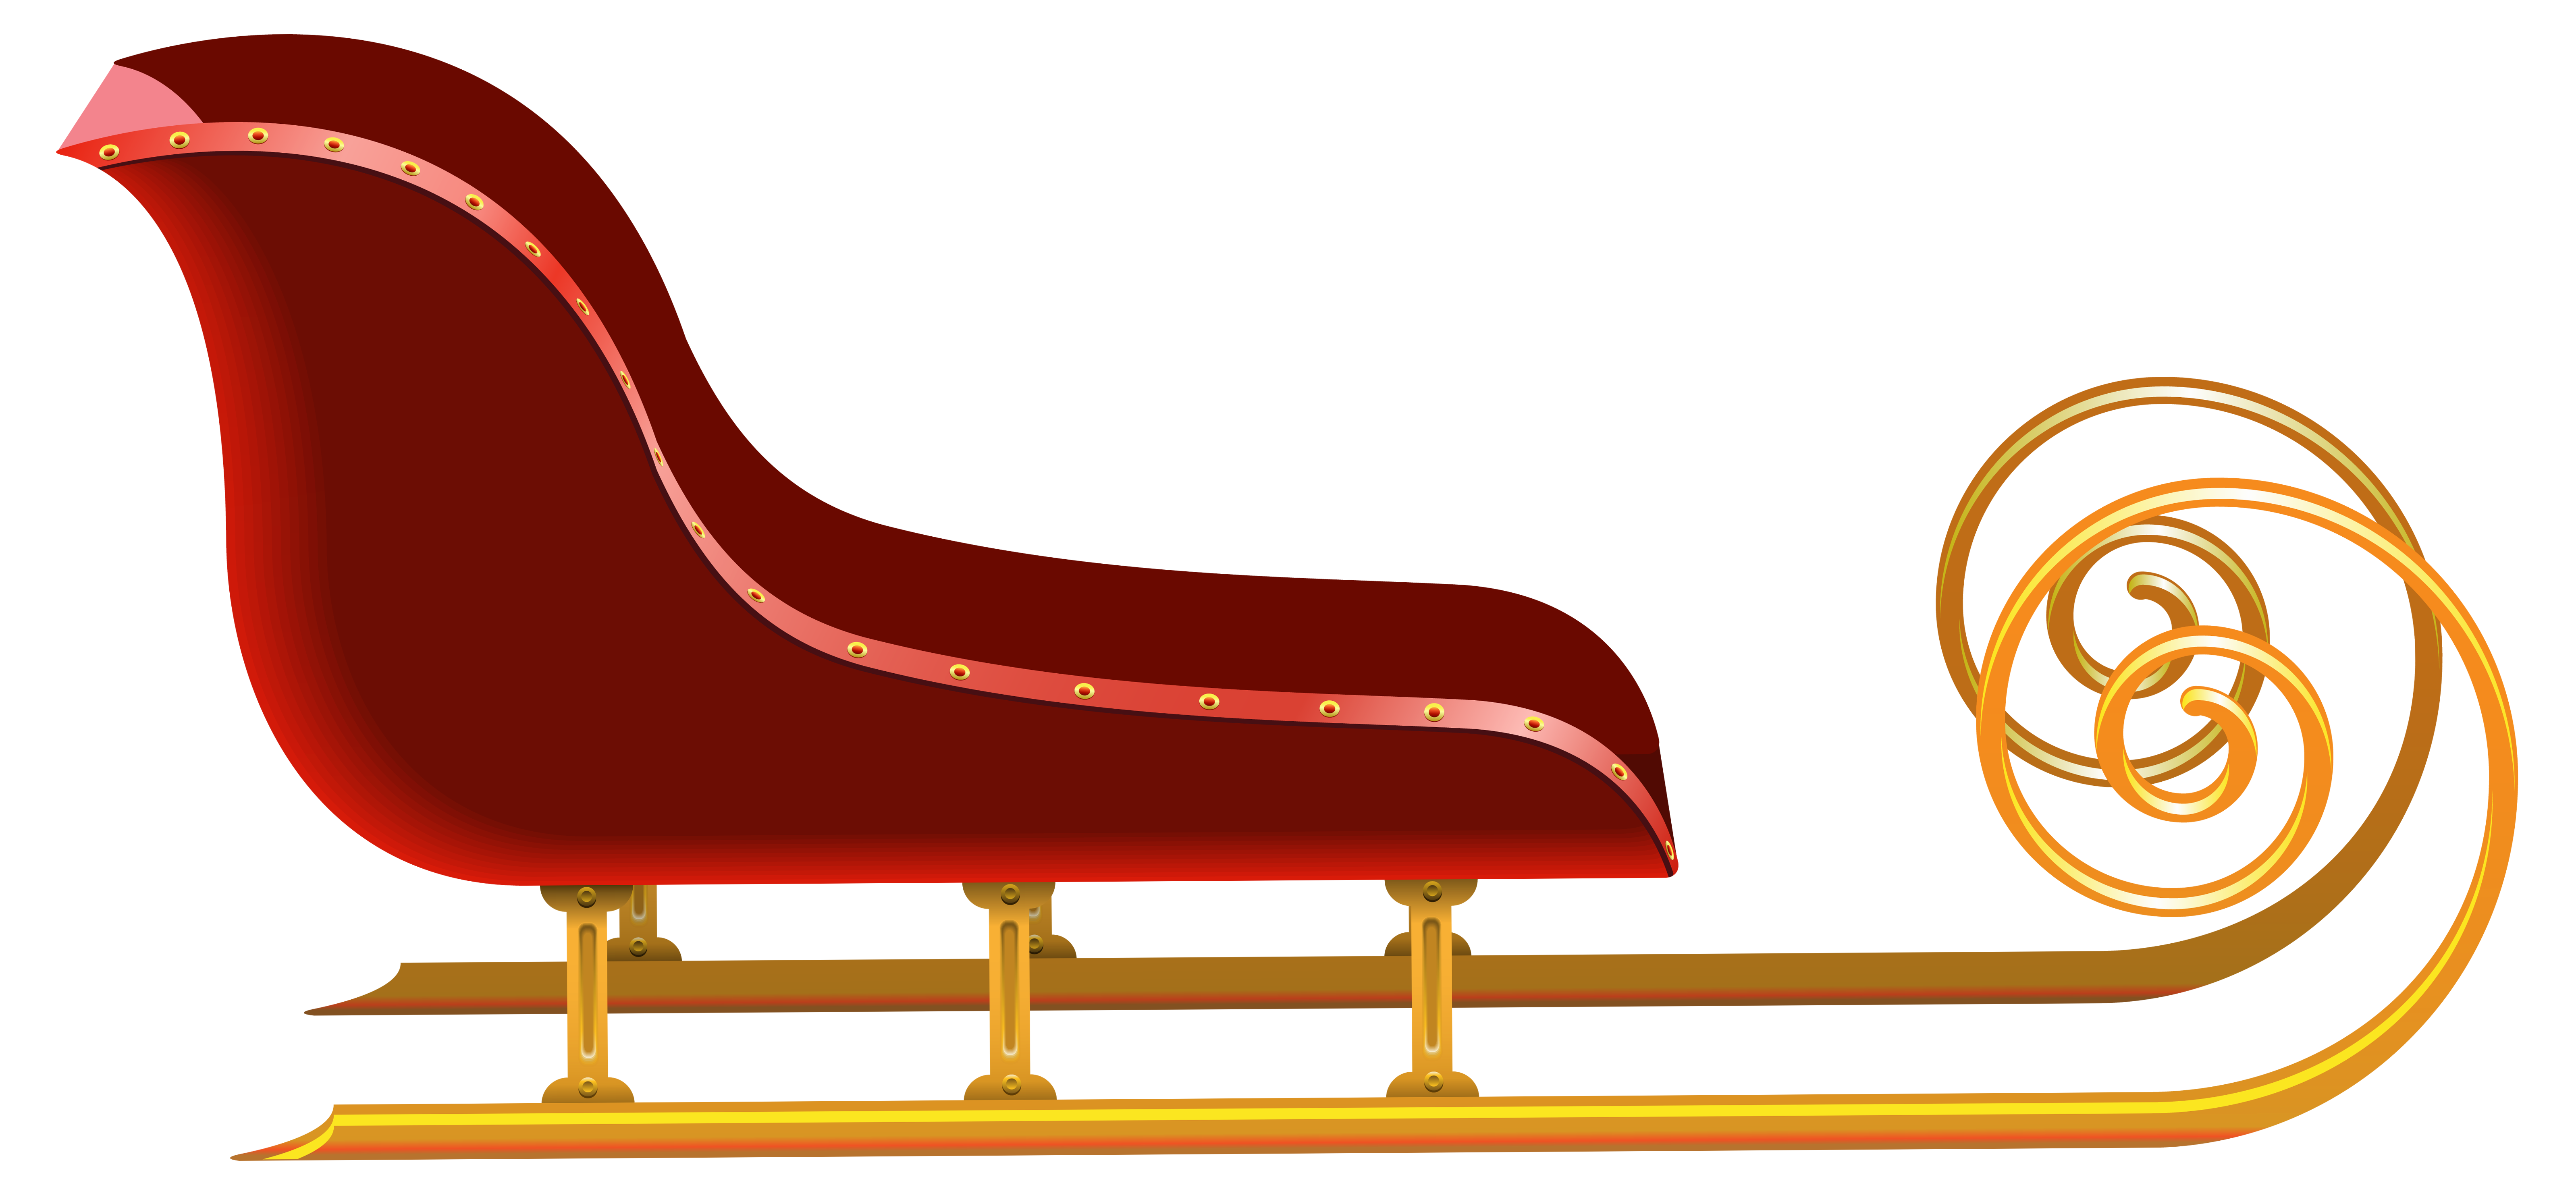 Free clipart sleigh. Red png clip art